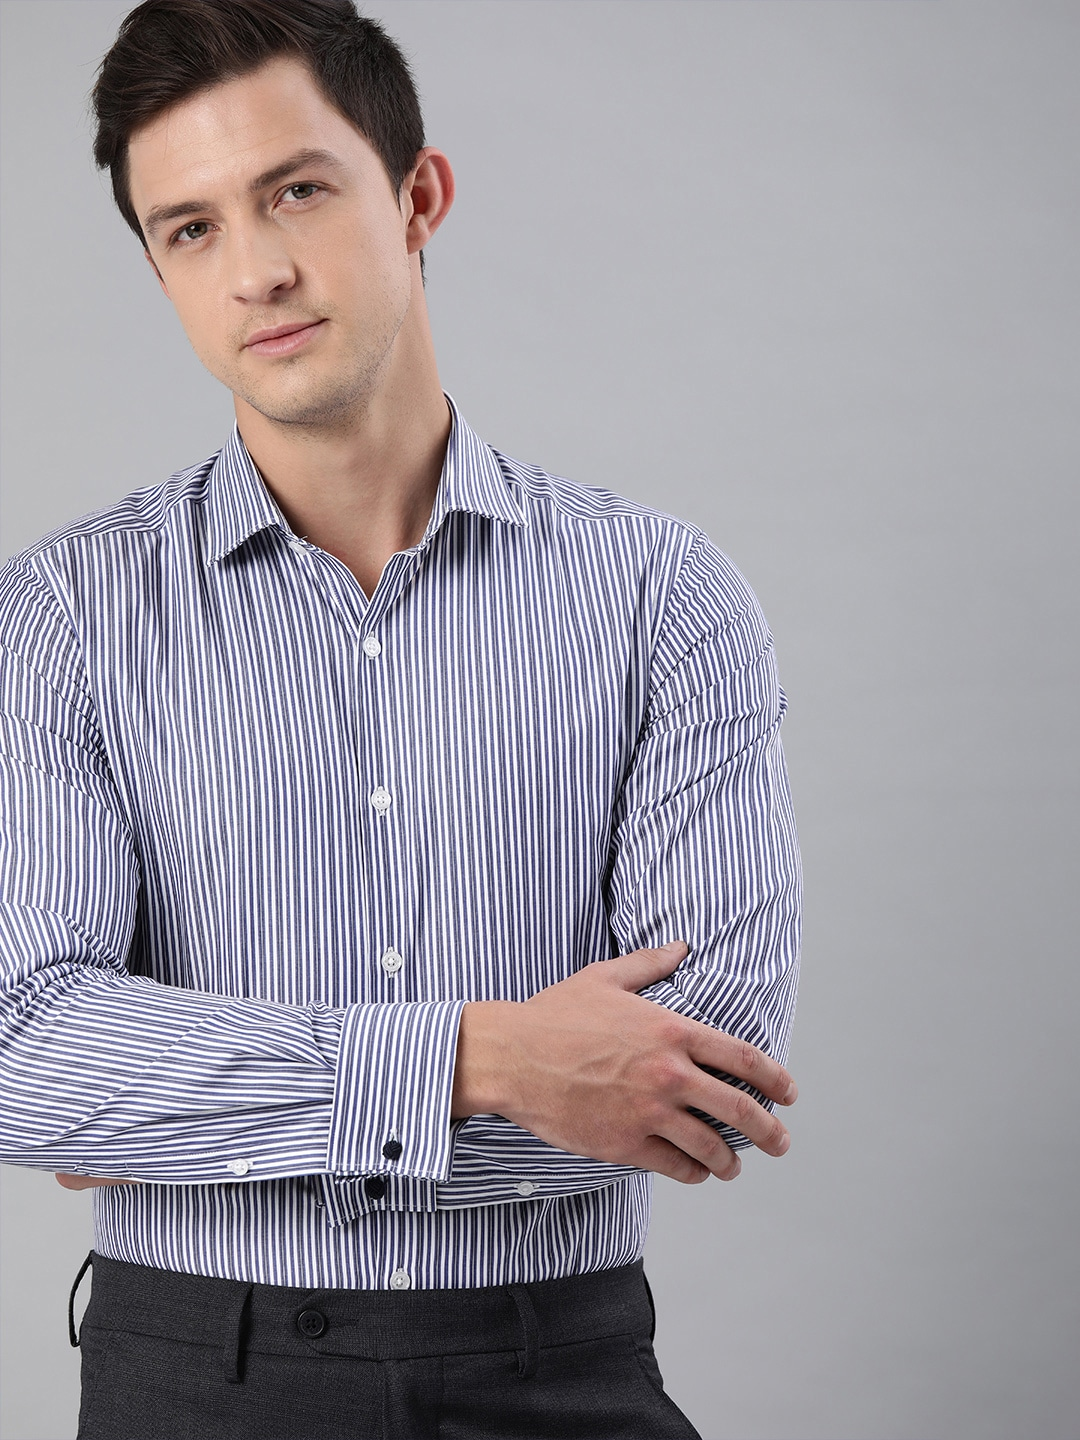 The Bear House | THE BEAR HOUSE Men Off-White  Navy Blue Slim Fit Striped French-Cuff Formal Shirt